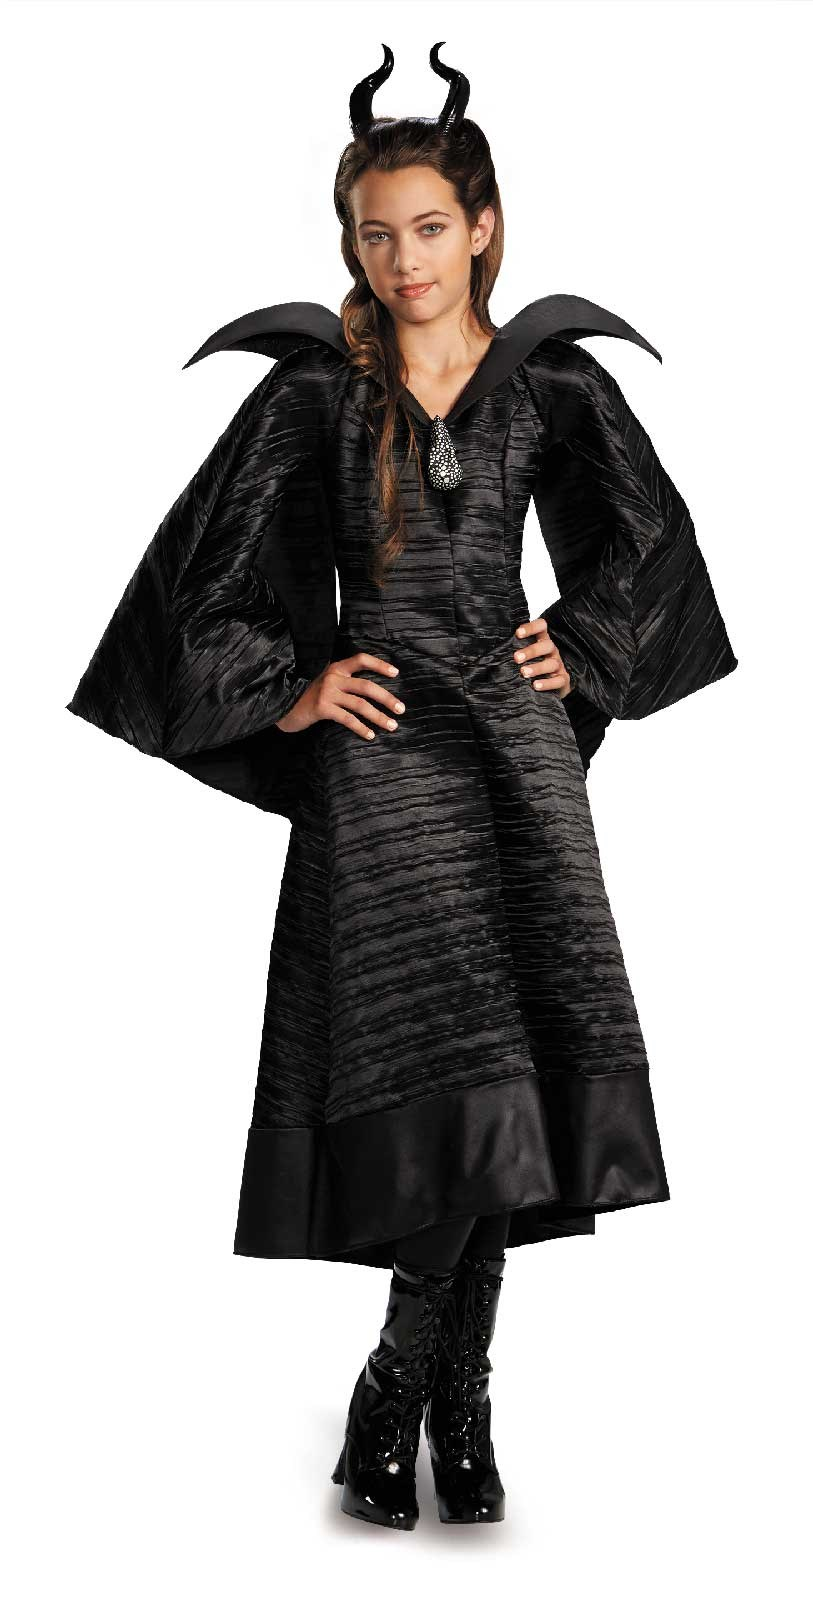 Maleficent Deluxe Christening Black Dress Girls Costume